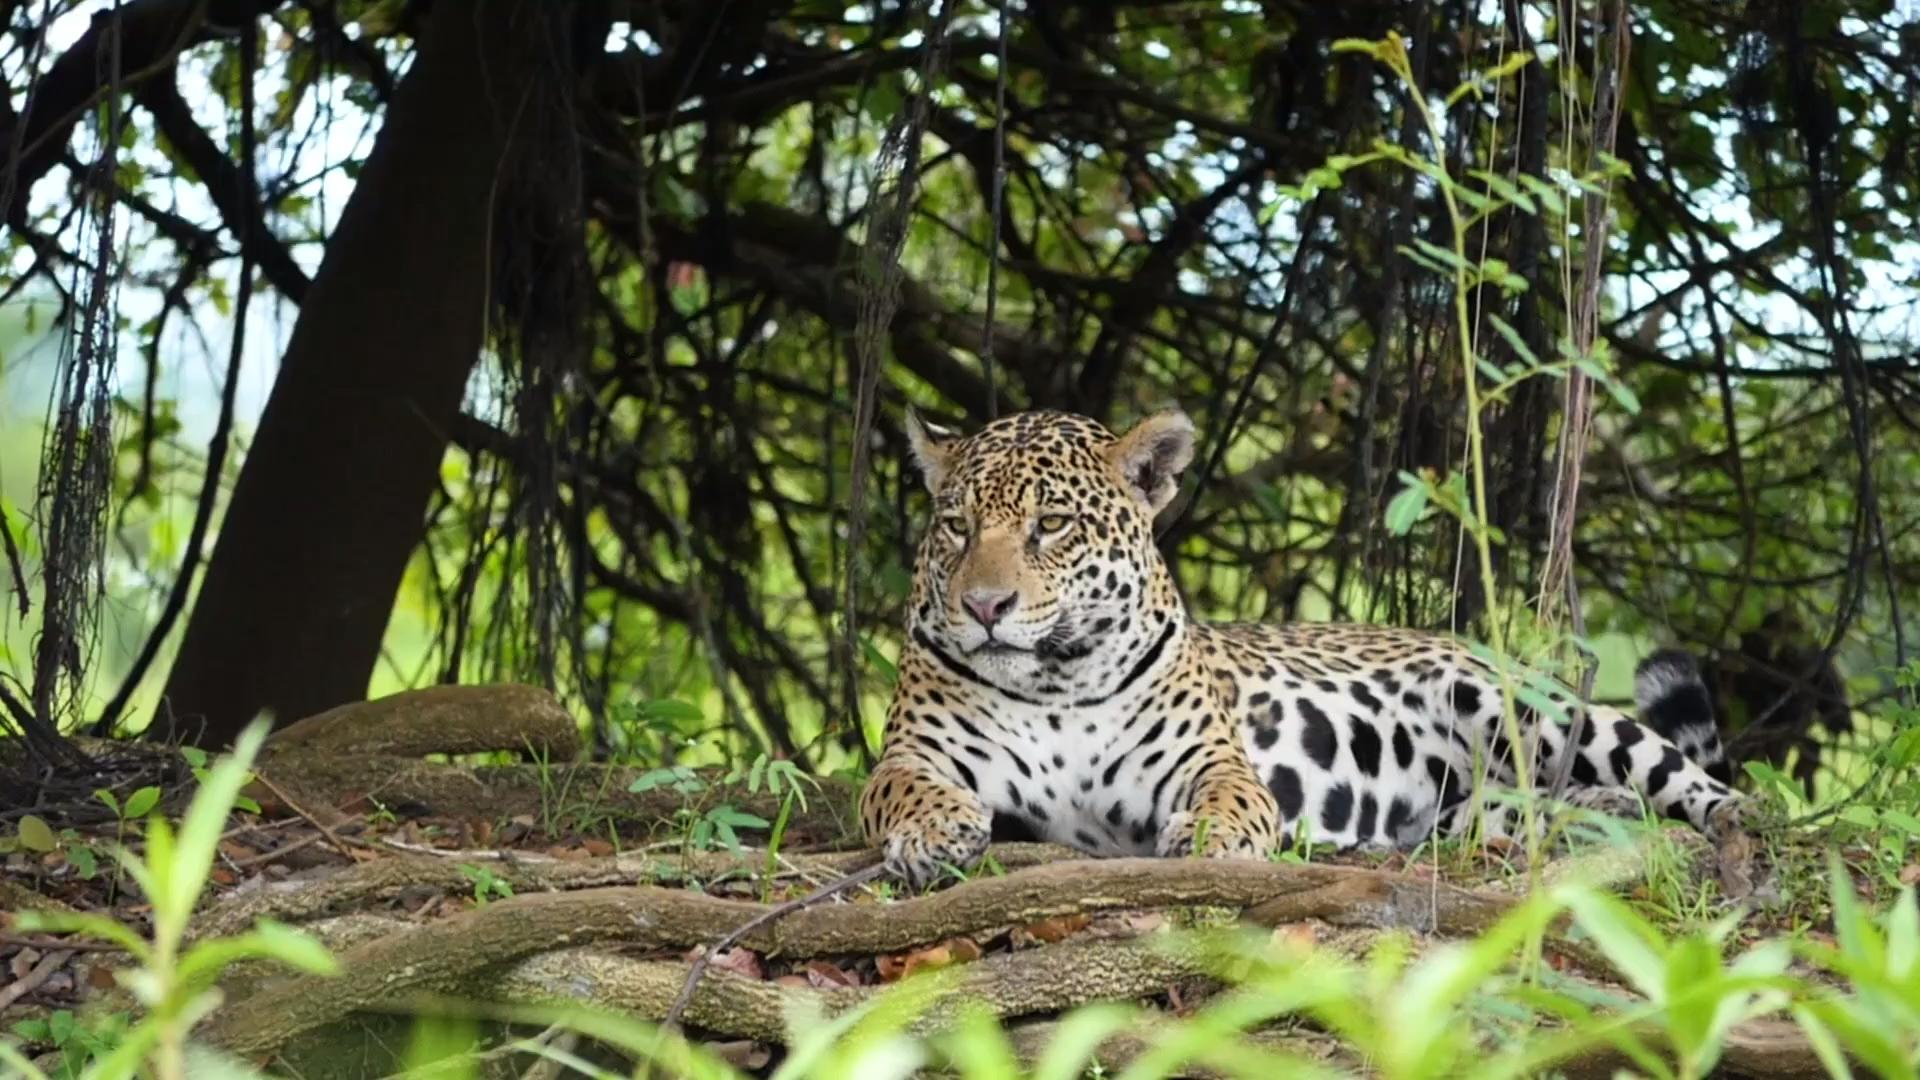 Wildlife wonderland: planning your trip to the Pantanal